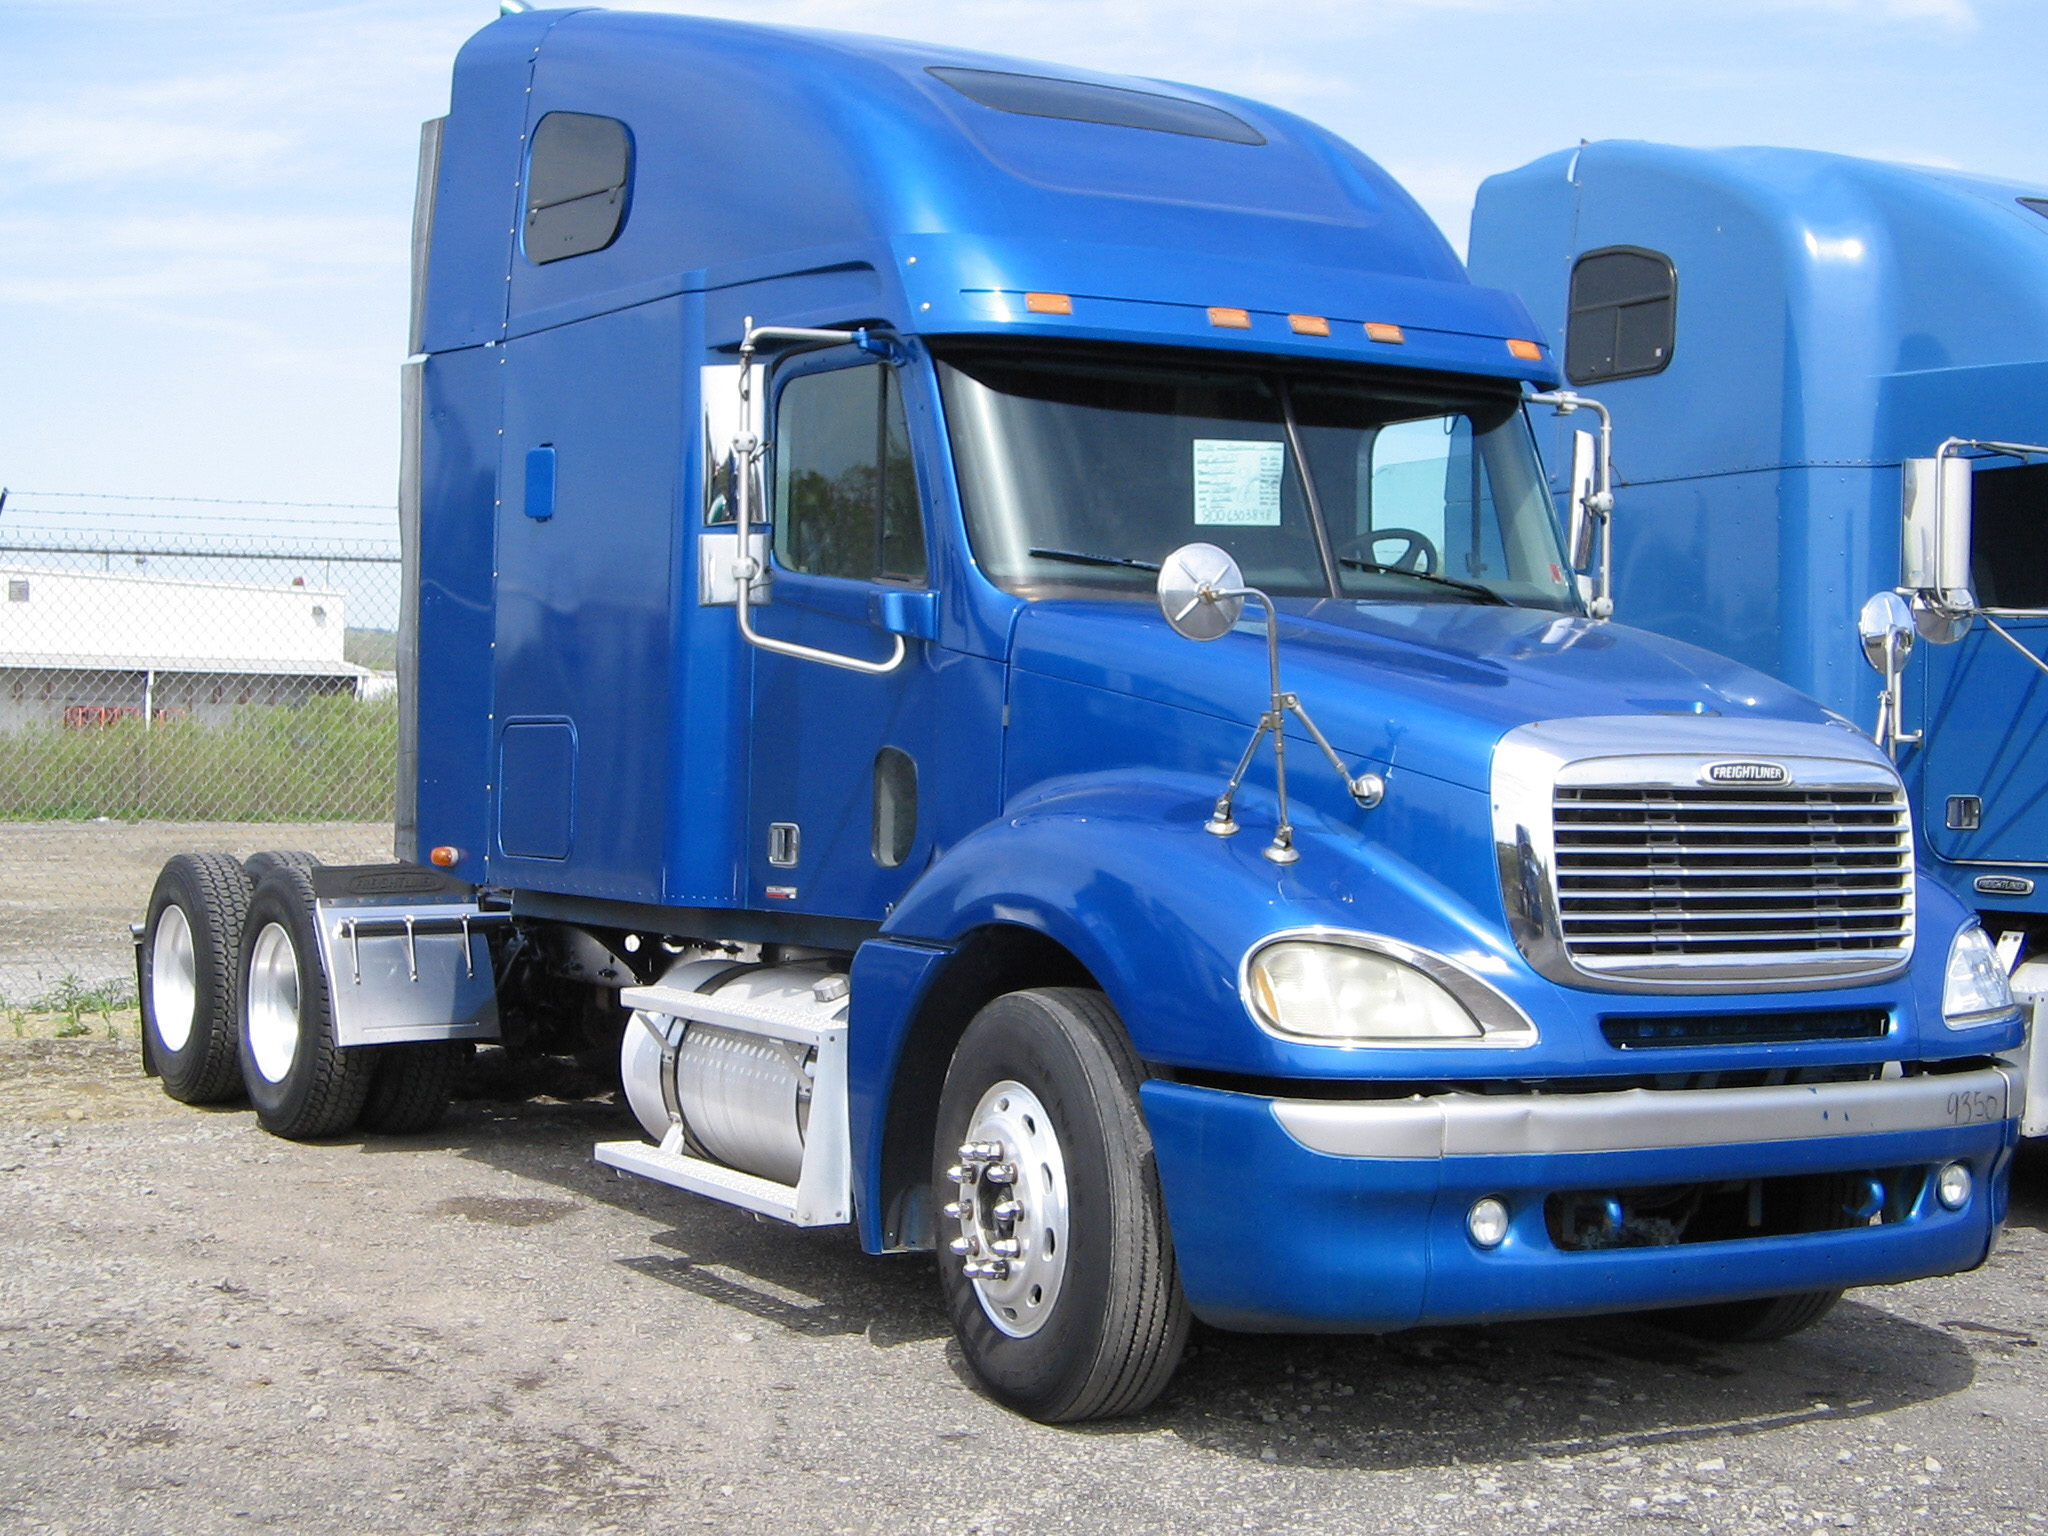 Freightliner Trucks For Sale >> Freightliner Columbia photos - PhotoGallery with 11 pics ...